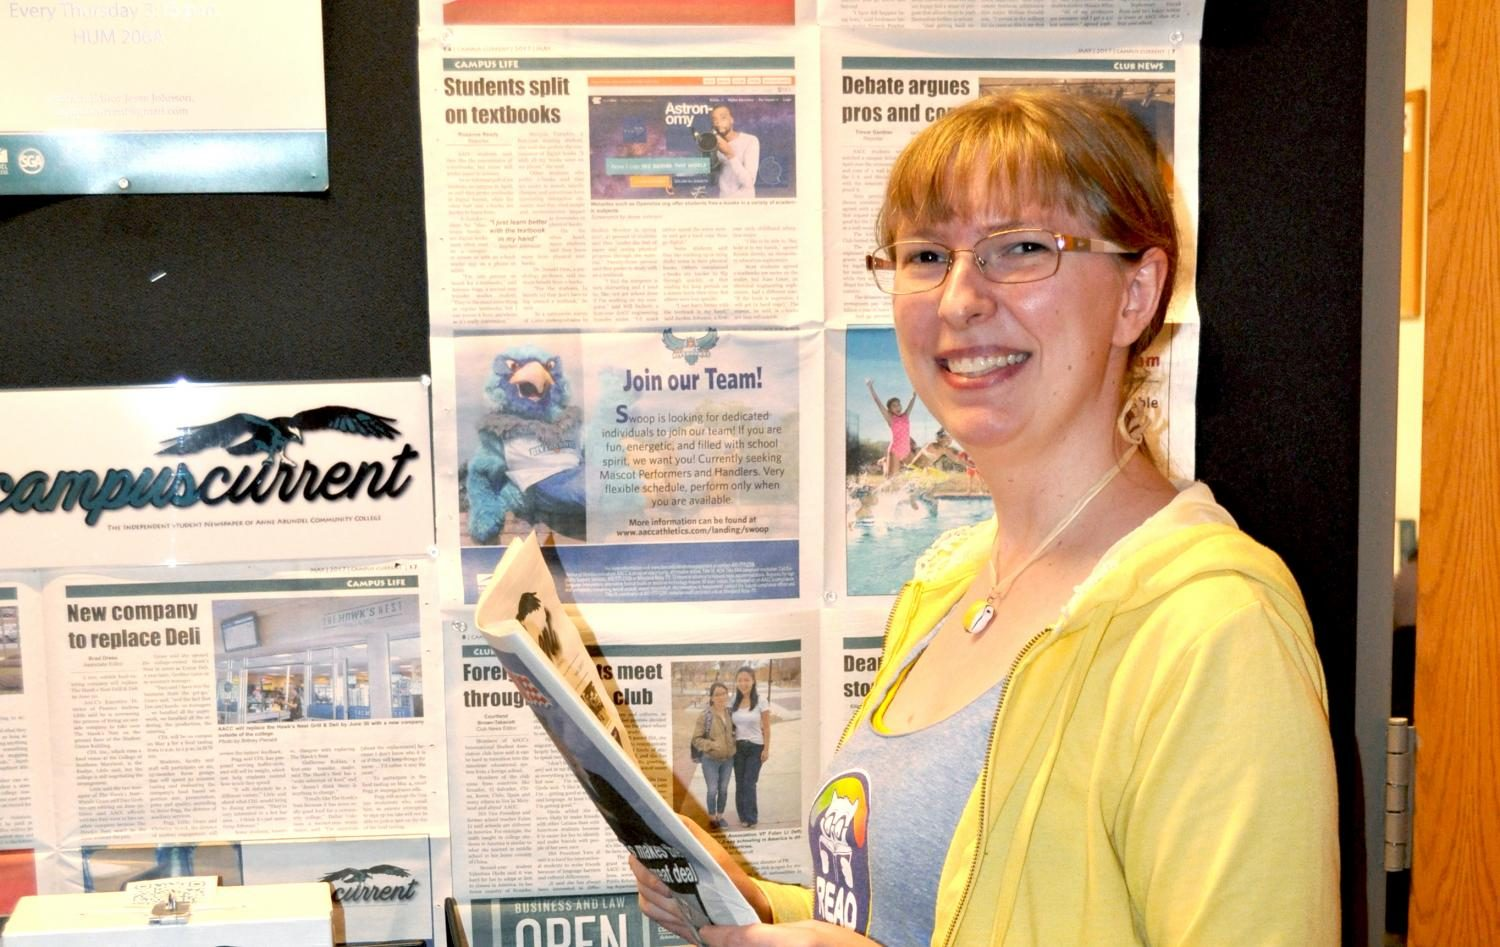 Campus Current is looking for more student opinions, says Editor-in-Chief Roxanne Ready